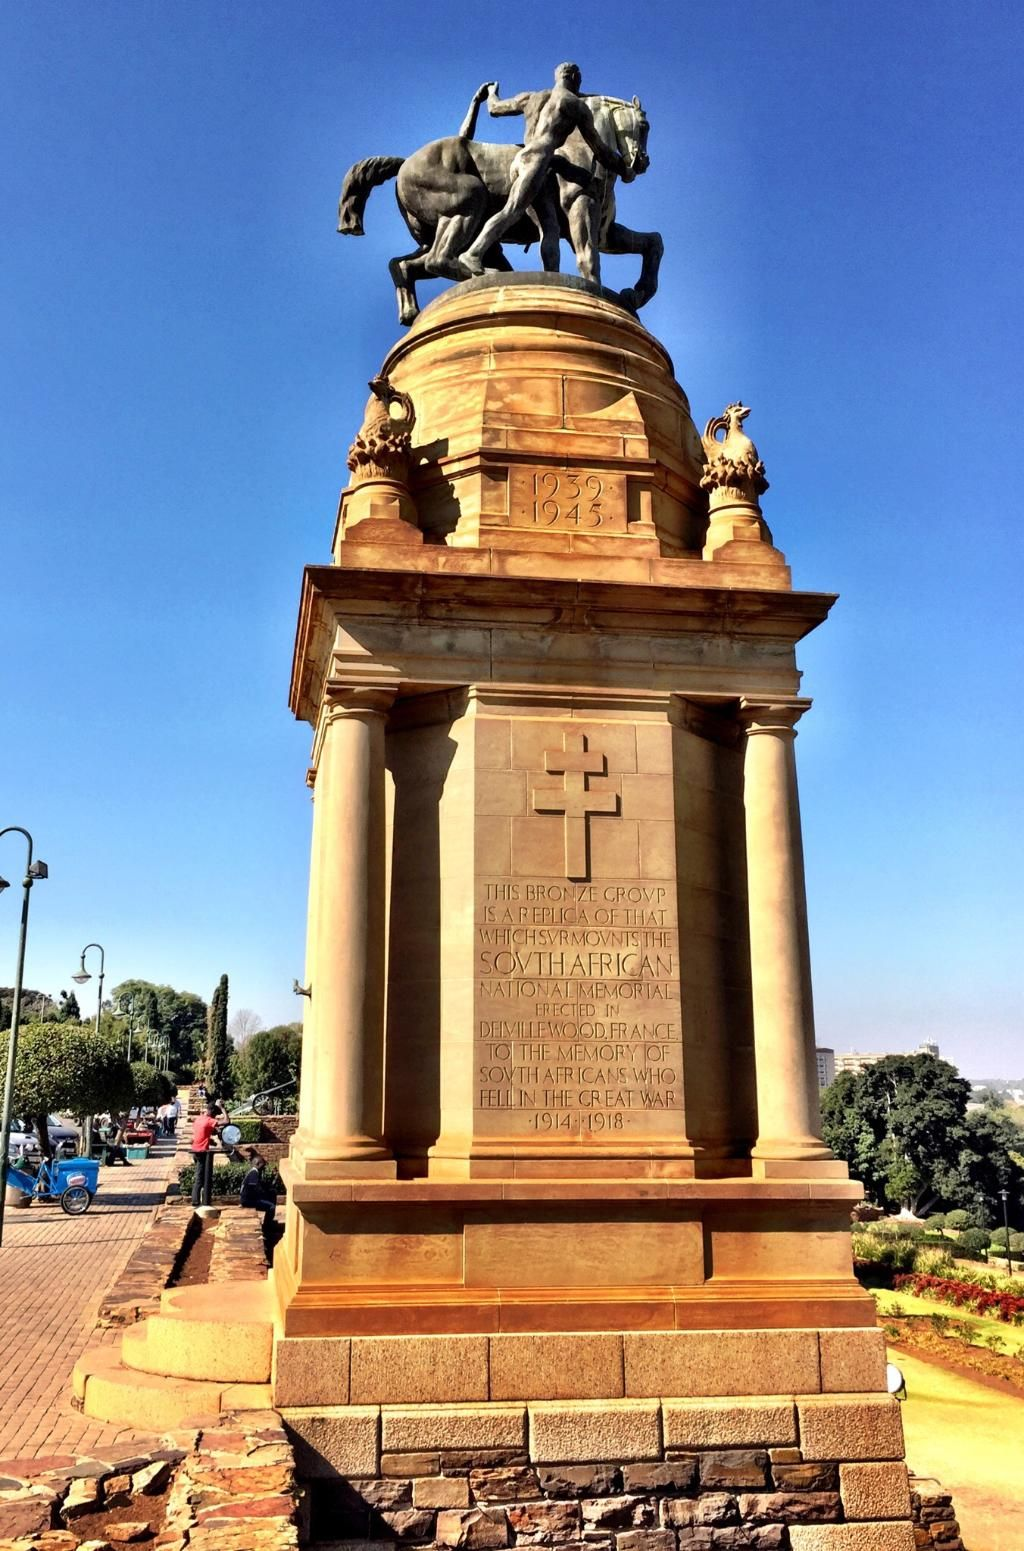 Union Buildings (Pretoria, South Africa) Address